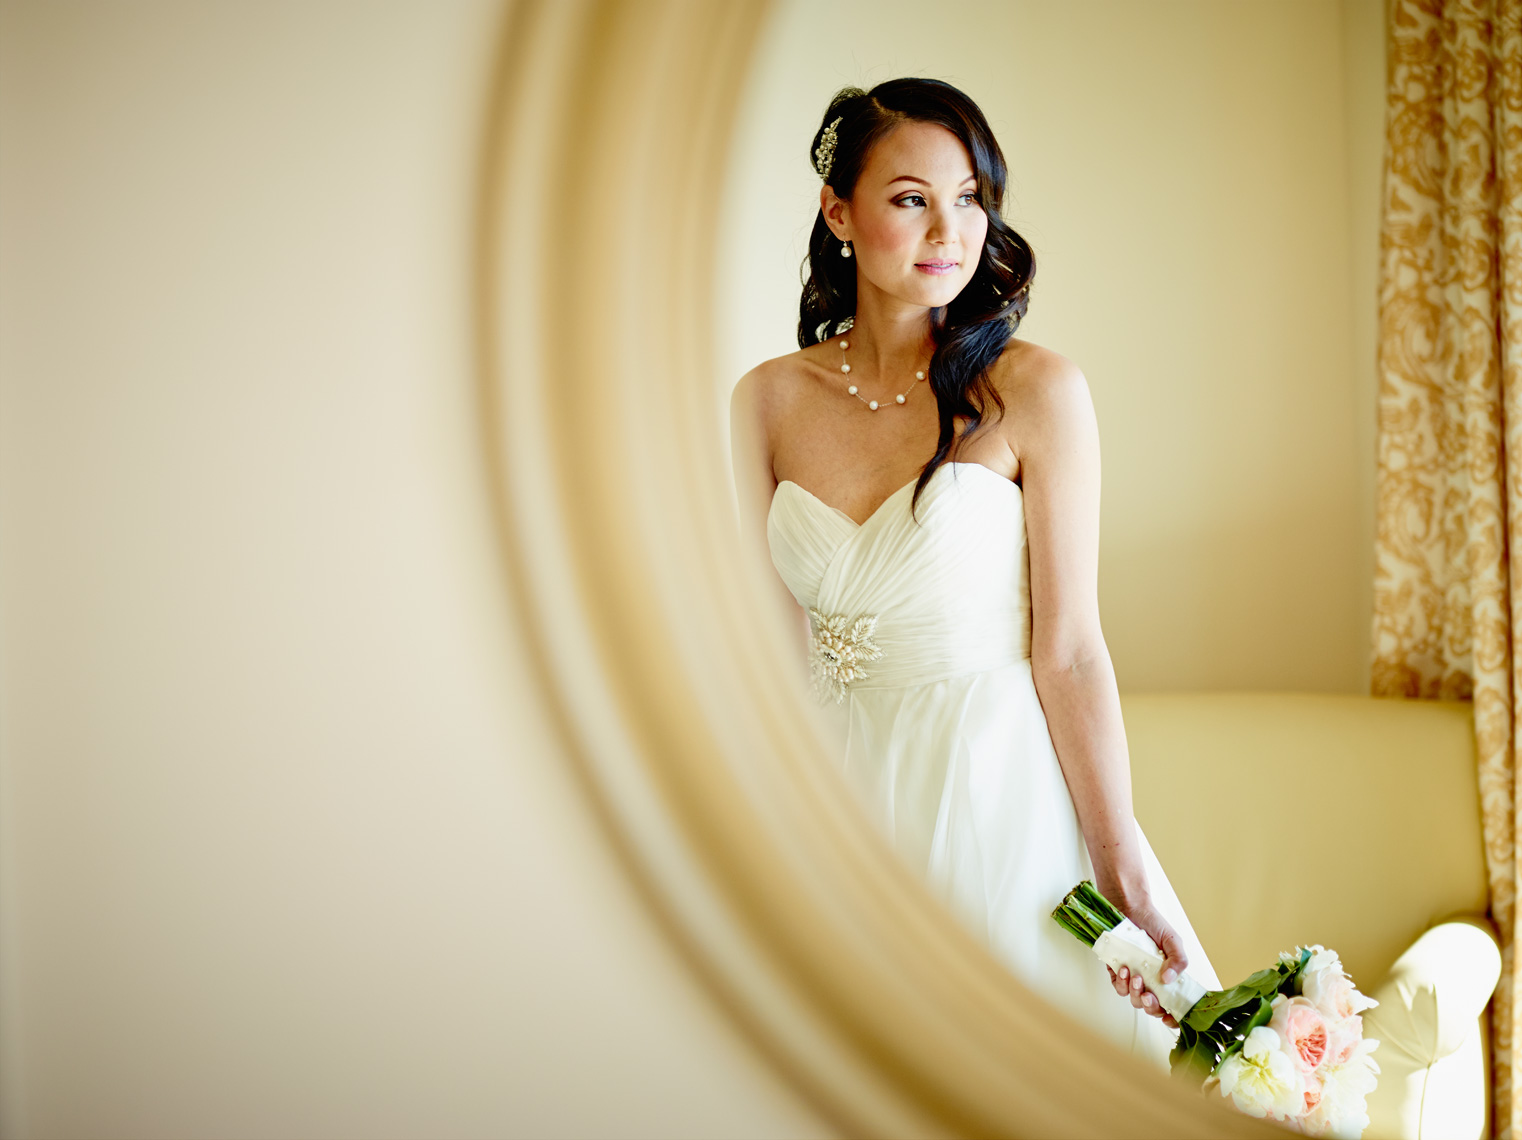 Bride poses for a portrait at Terranea Resort in Rancho Palos Verdes, CA.